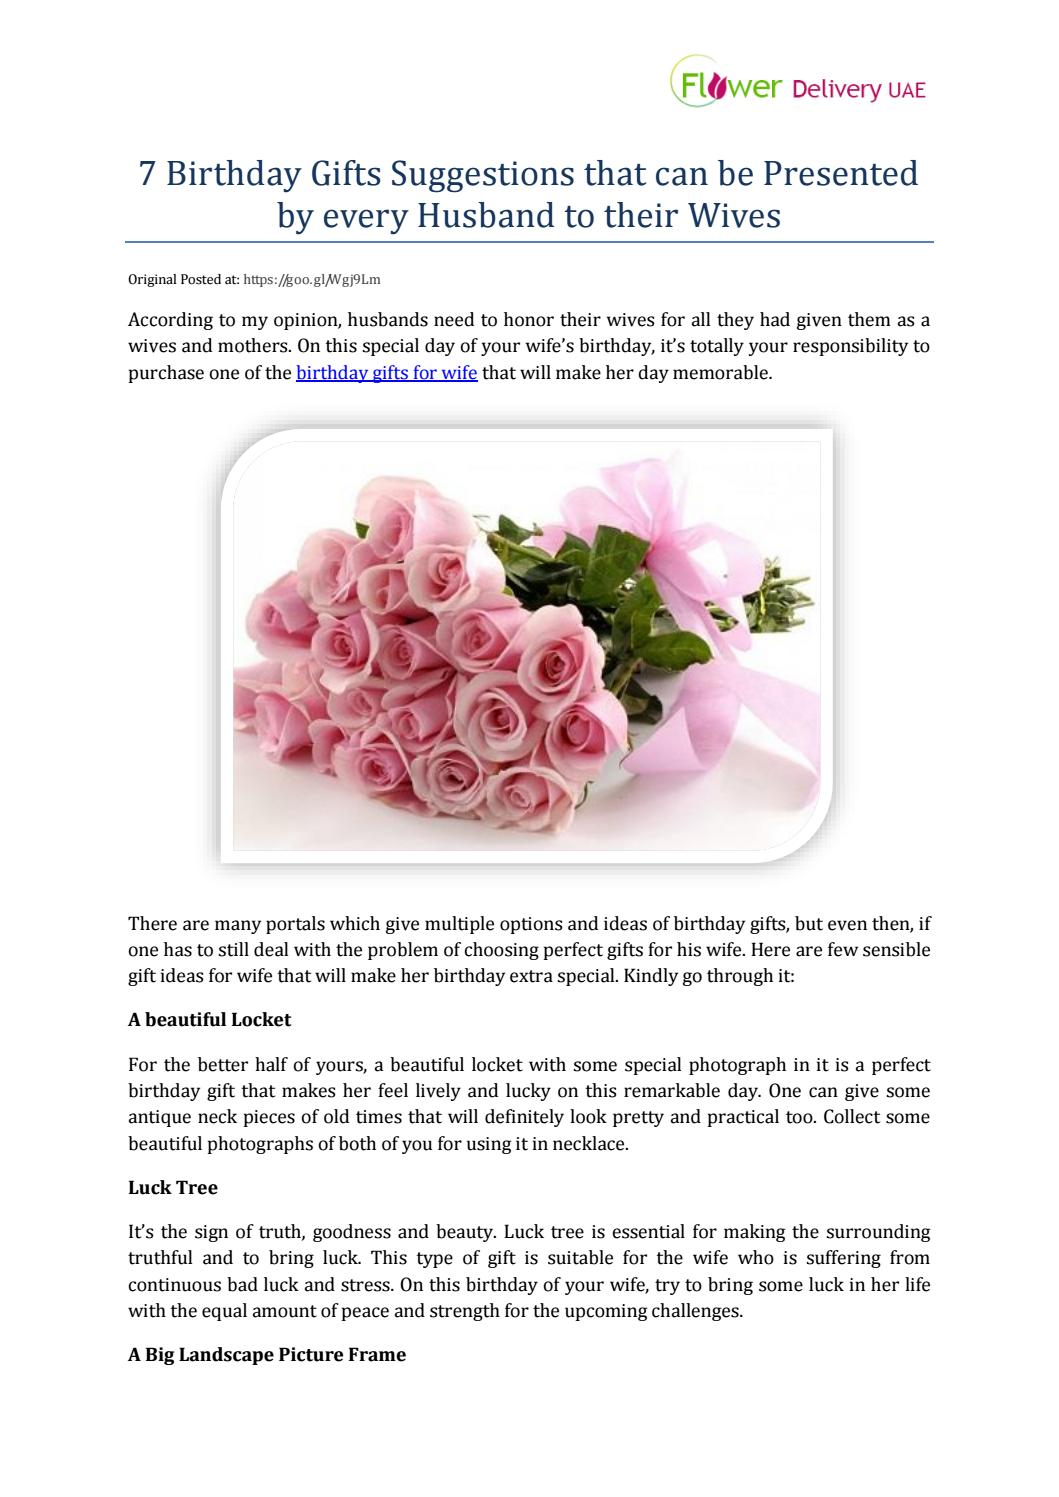 7 Birthday Gifts Suggestions That Can Be Presented By Every Husband To Their Wives Flower Delivery UAE